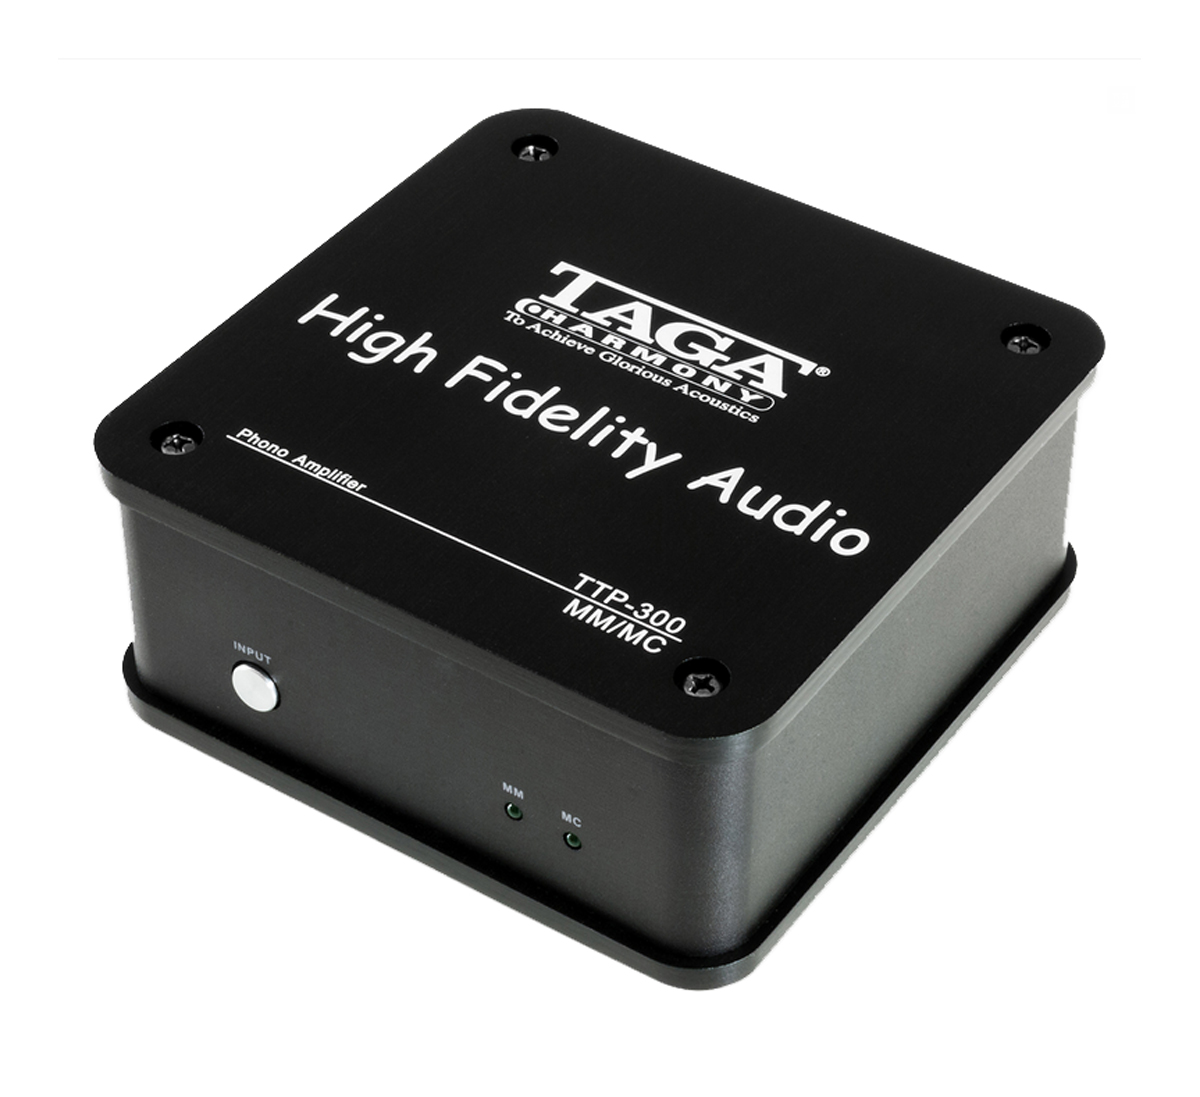 Taga TTP-300 MM/MC Phono Amplifier, black